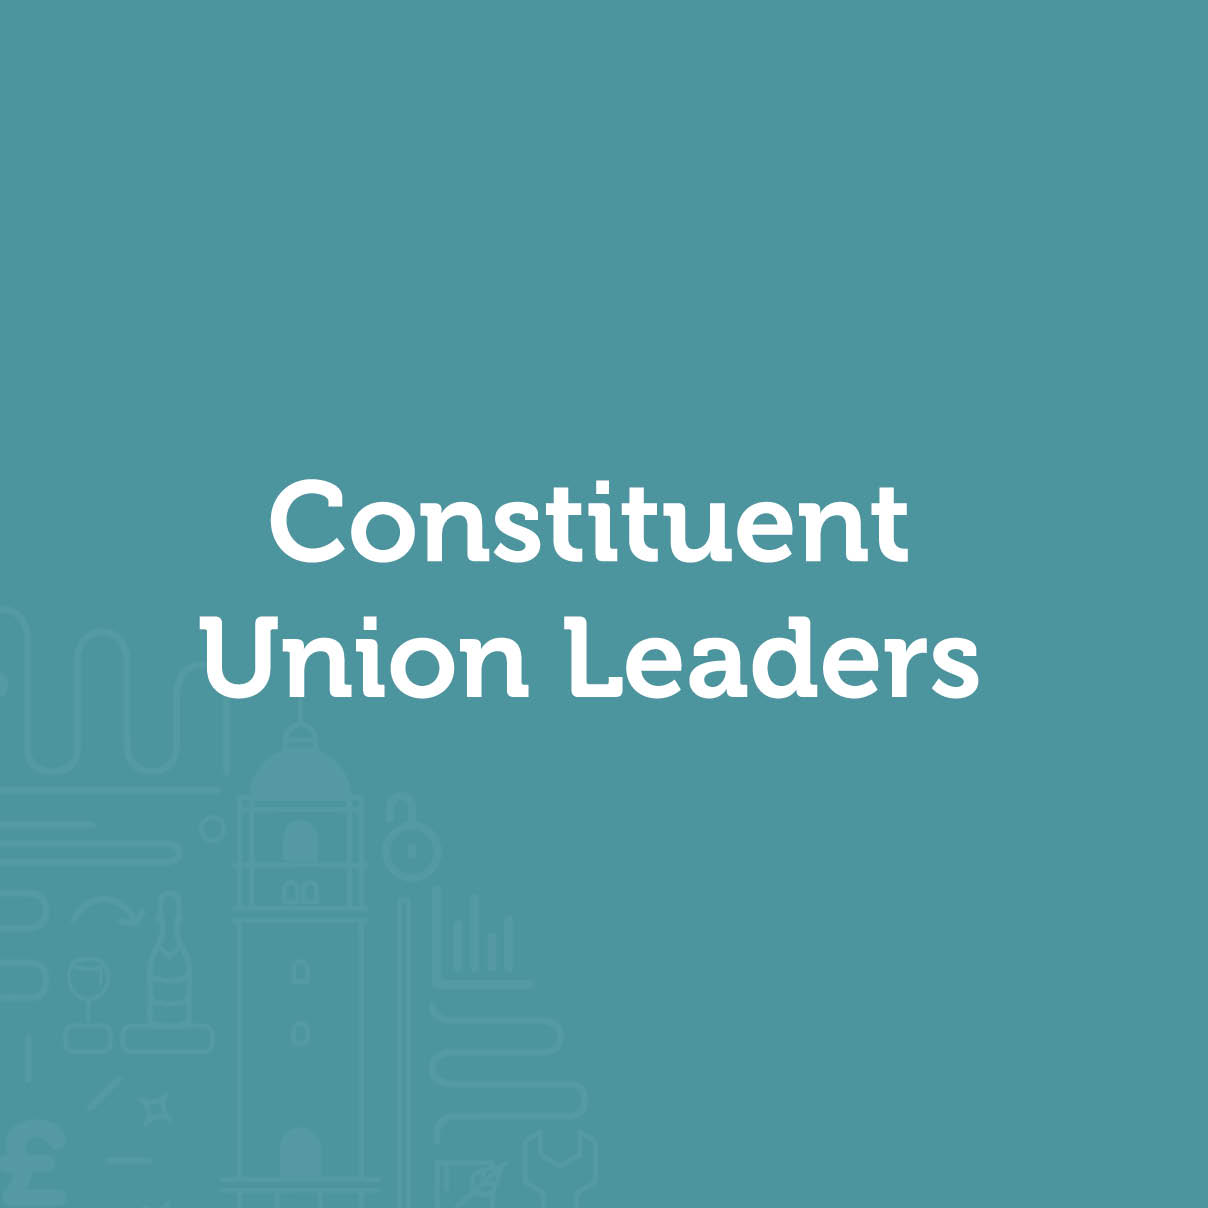 Constituent Union Leaders